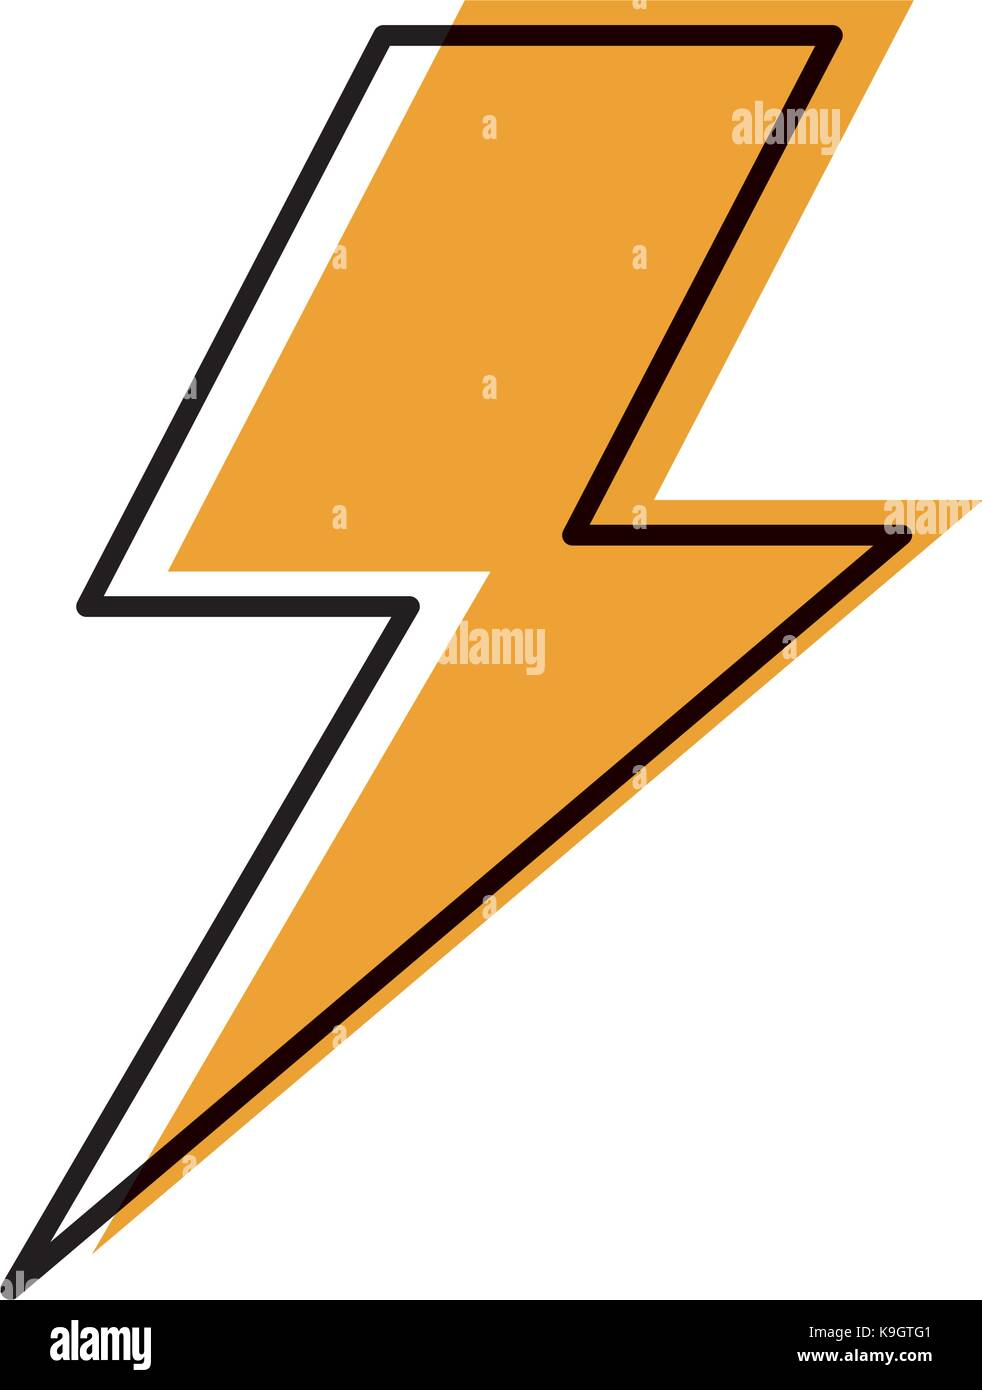 Warning sign electricity lightning bolt stock photos warning lightning bolt weather storm energy stock image buycottarizona